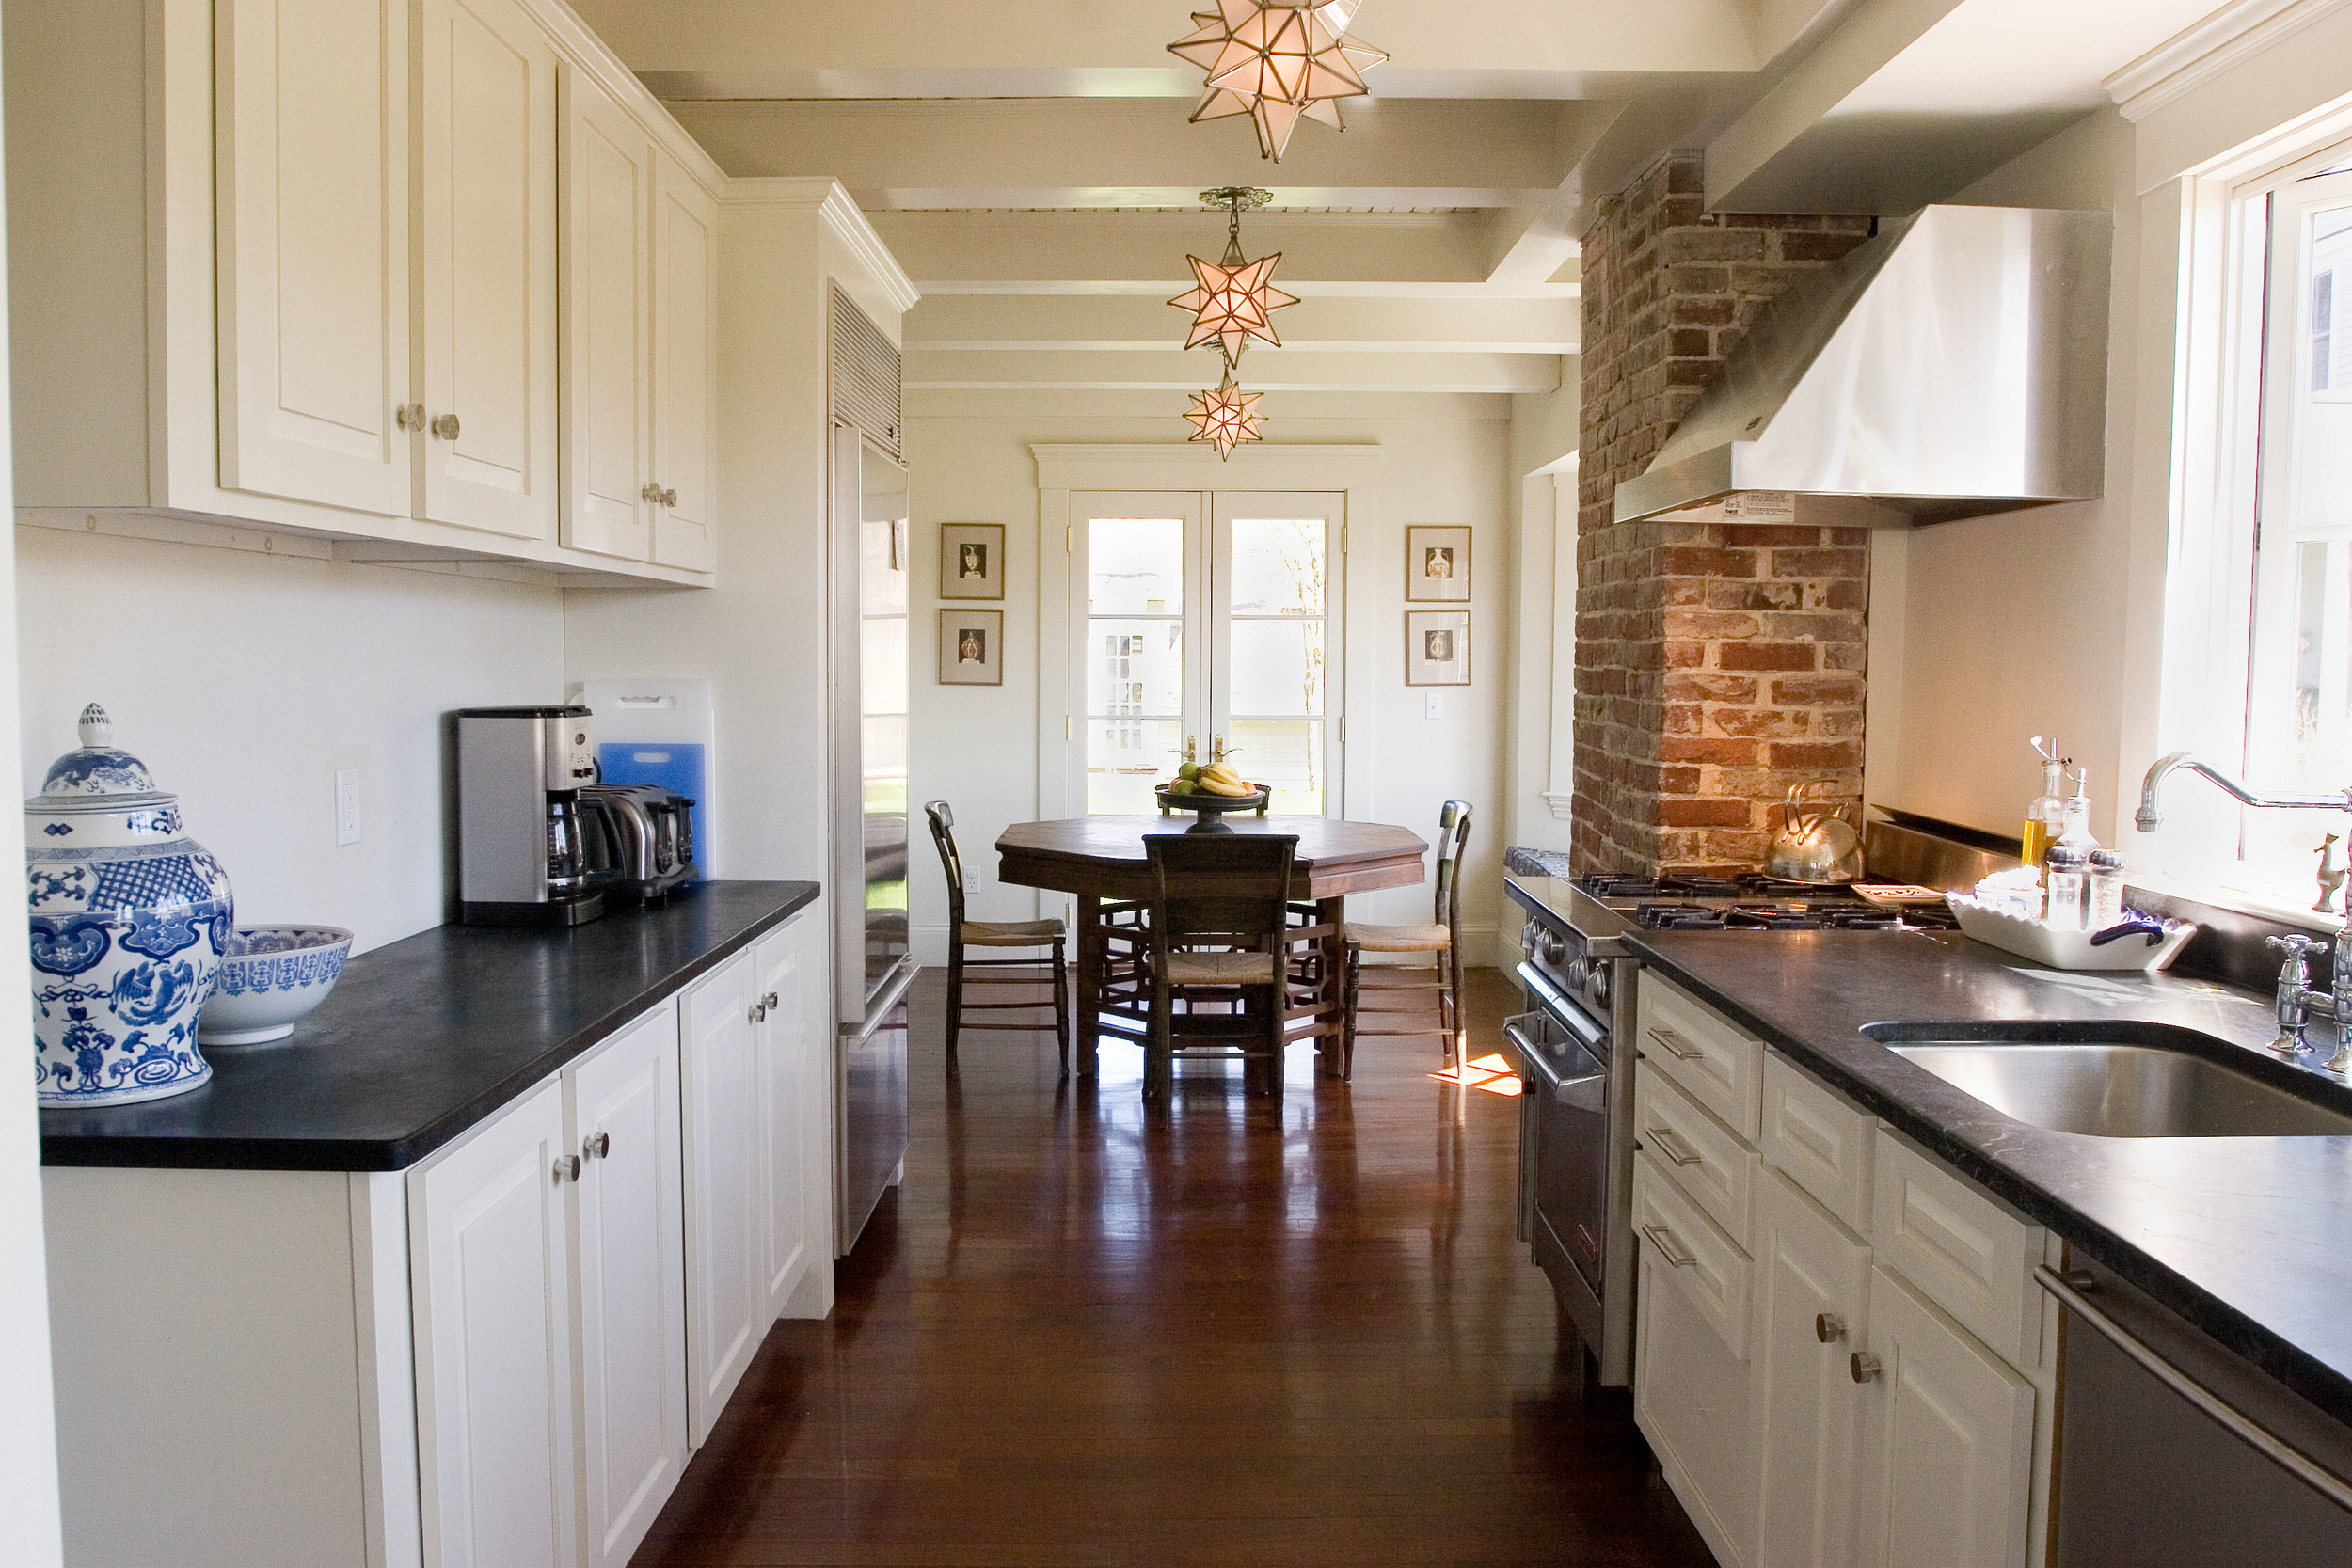 15 Kitchen to Dining Area.jpg